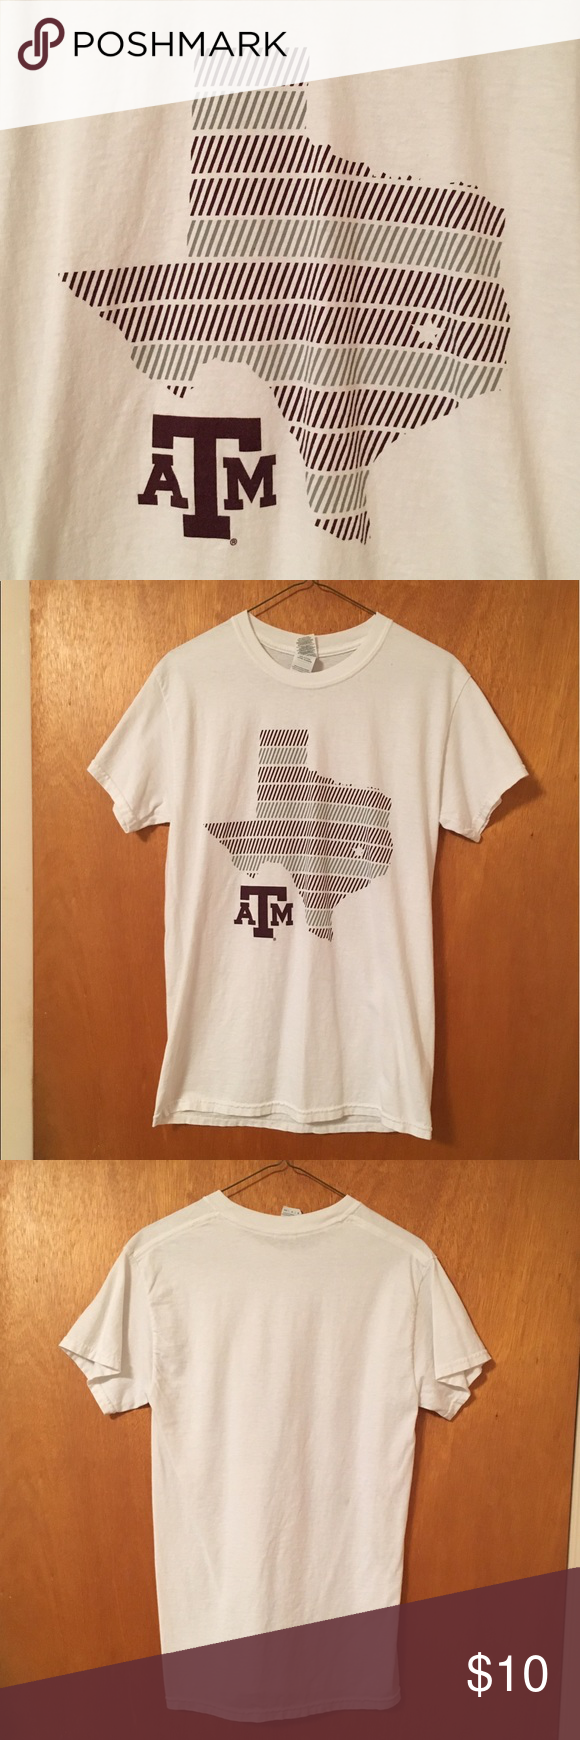 Texas A&M College Station tee! Cute print Texas A&M University tee shirt! Women's Small. Design has a star over College Station! Worn once or twice. No picture on the back. Feel free to make an offer or ask questions! Gildan Tops Tees - Short Sleeve